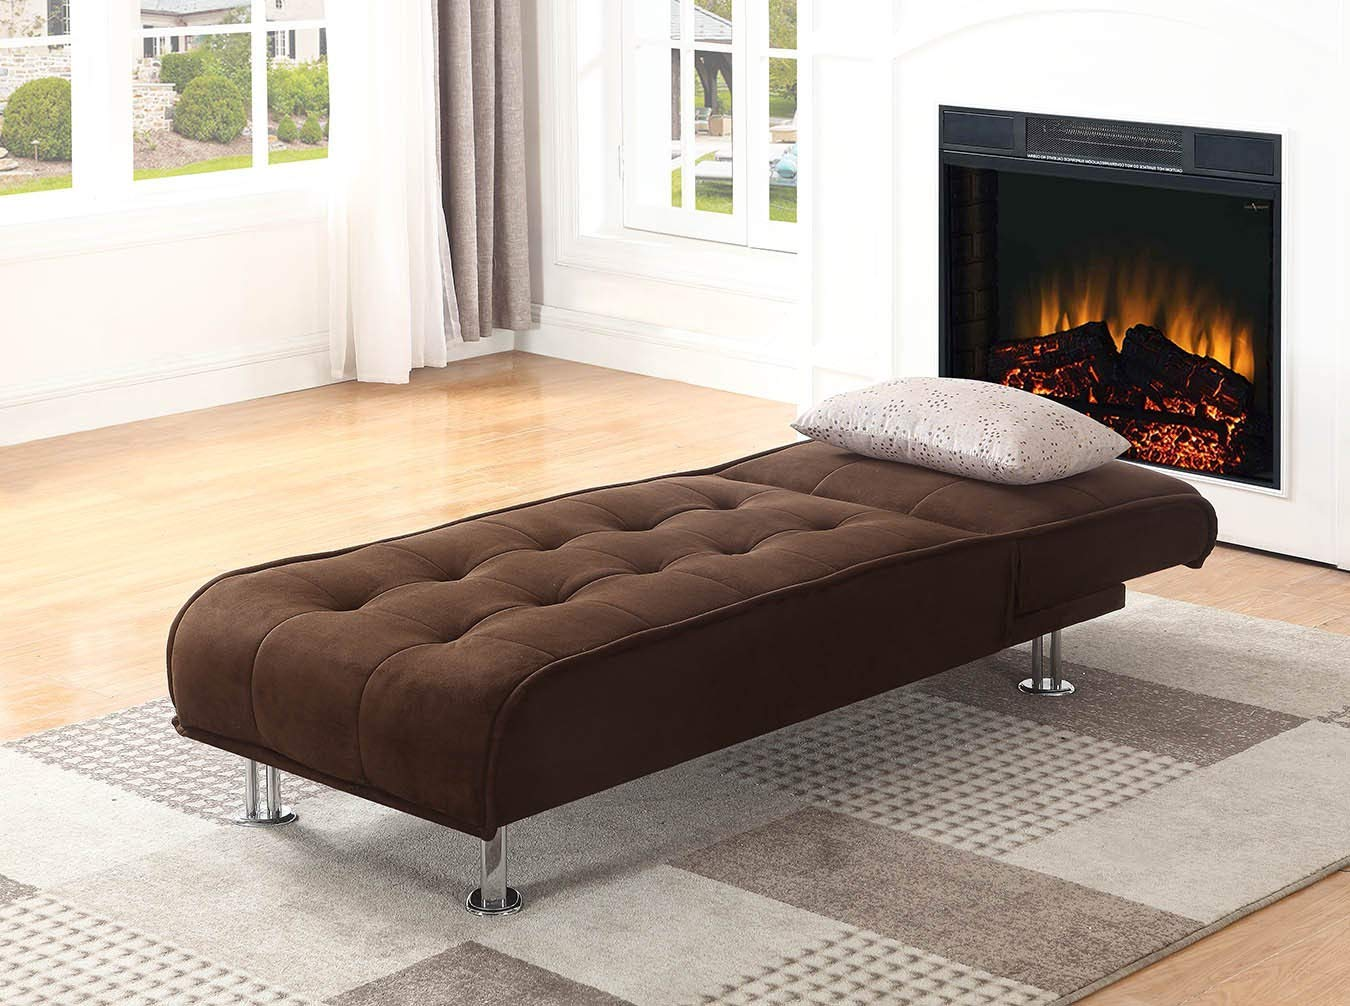 Ellwood Chaise Sofa Bed Brown by Coaster Home Furnishings